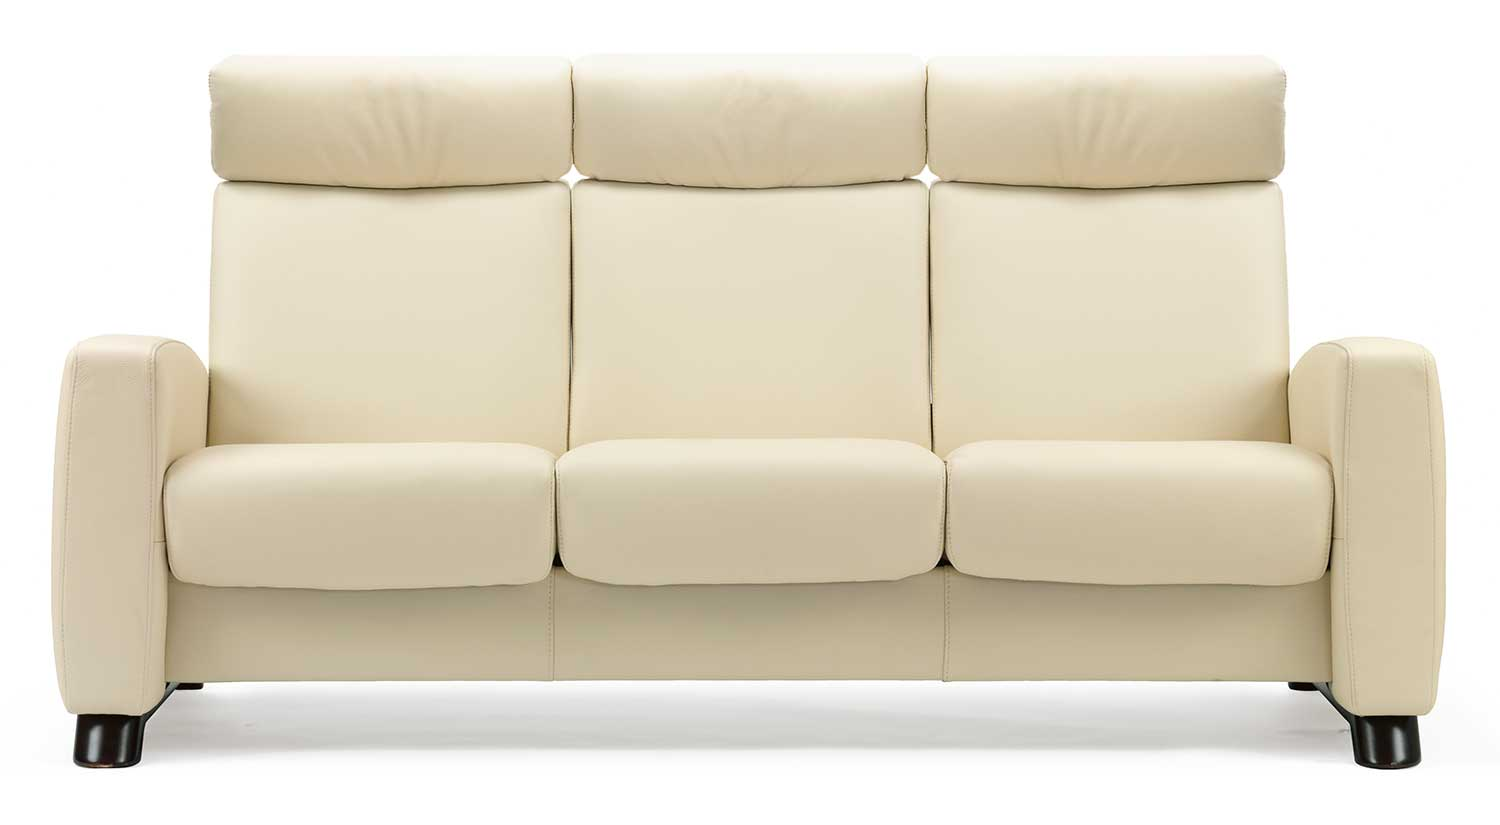 Circle furniture arion stressless highback sofa home theater seating ma Loveseat theater seating